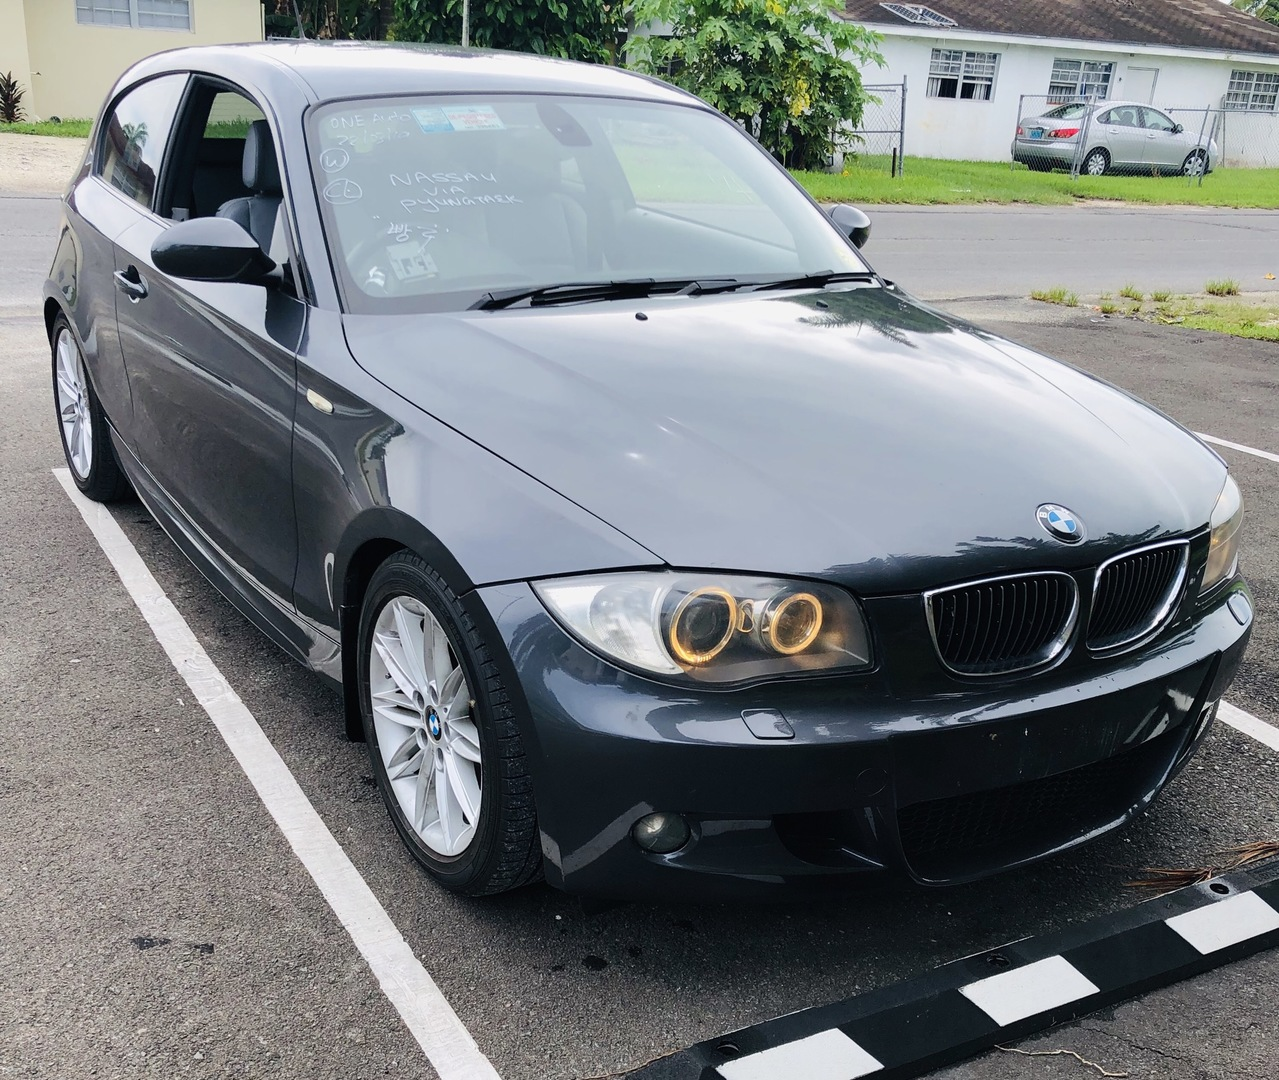 Best Price Used BMW 1 SERIES for Sale - Japanese Used Cars